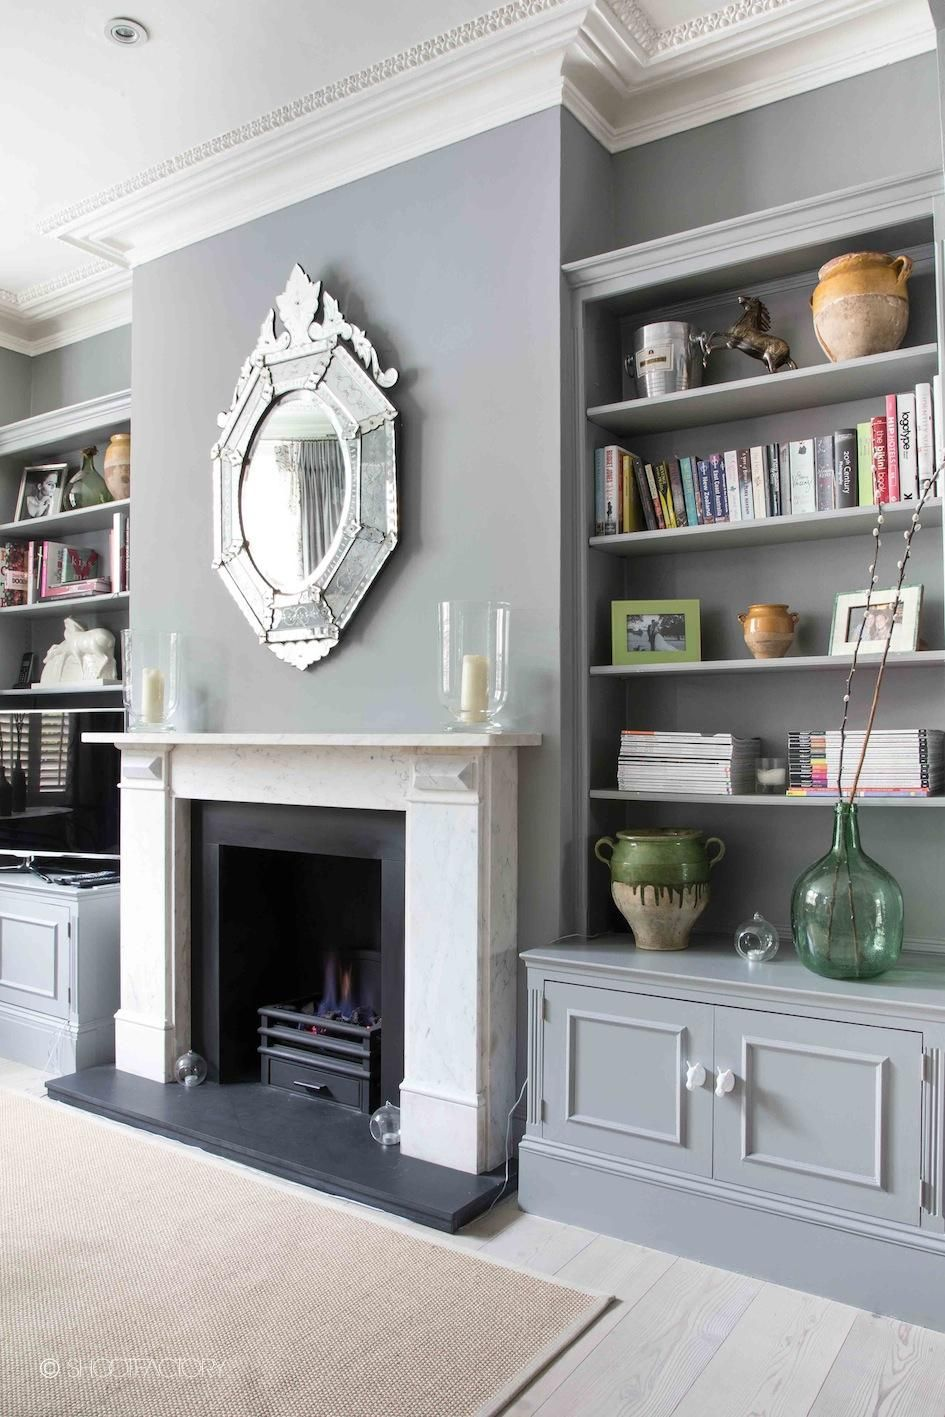 10 Tips For Decorating With Mirrors  Fireplaces